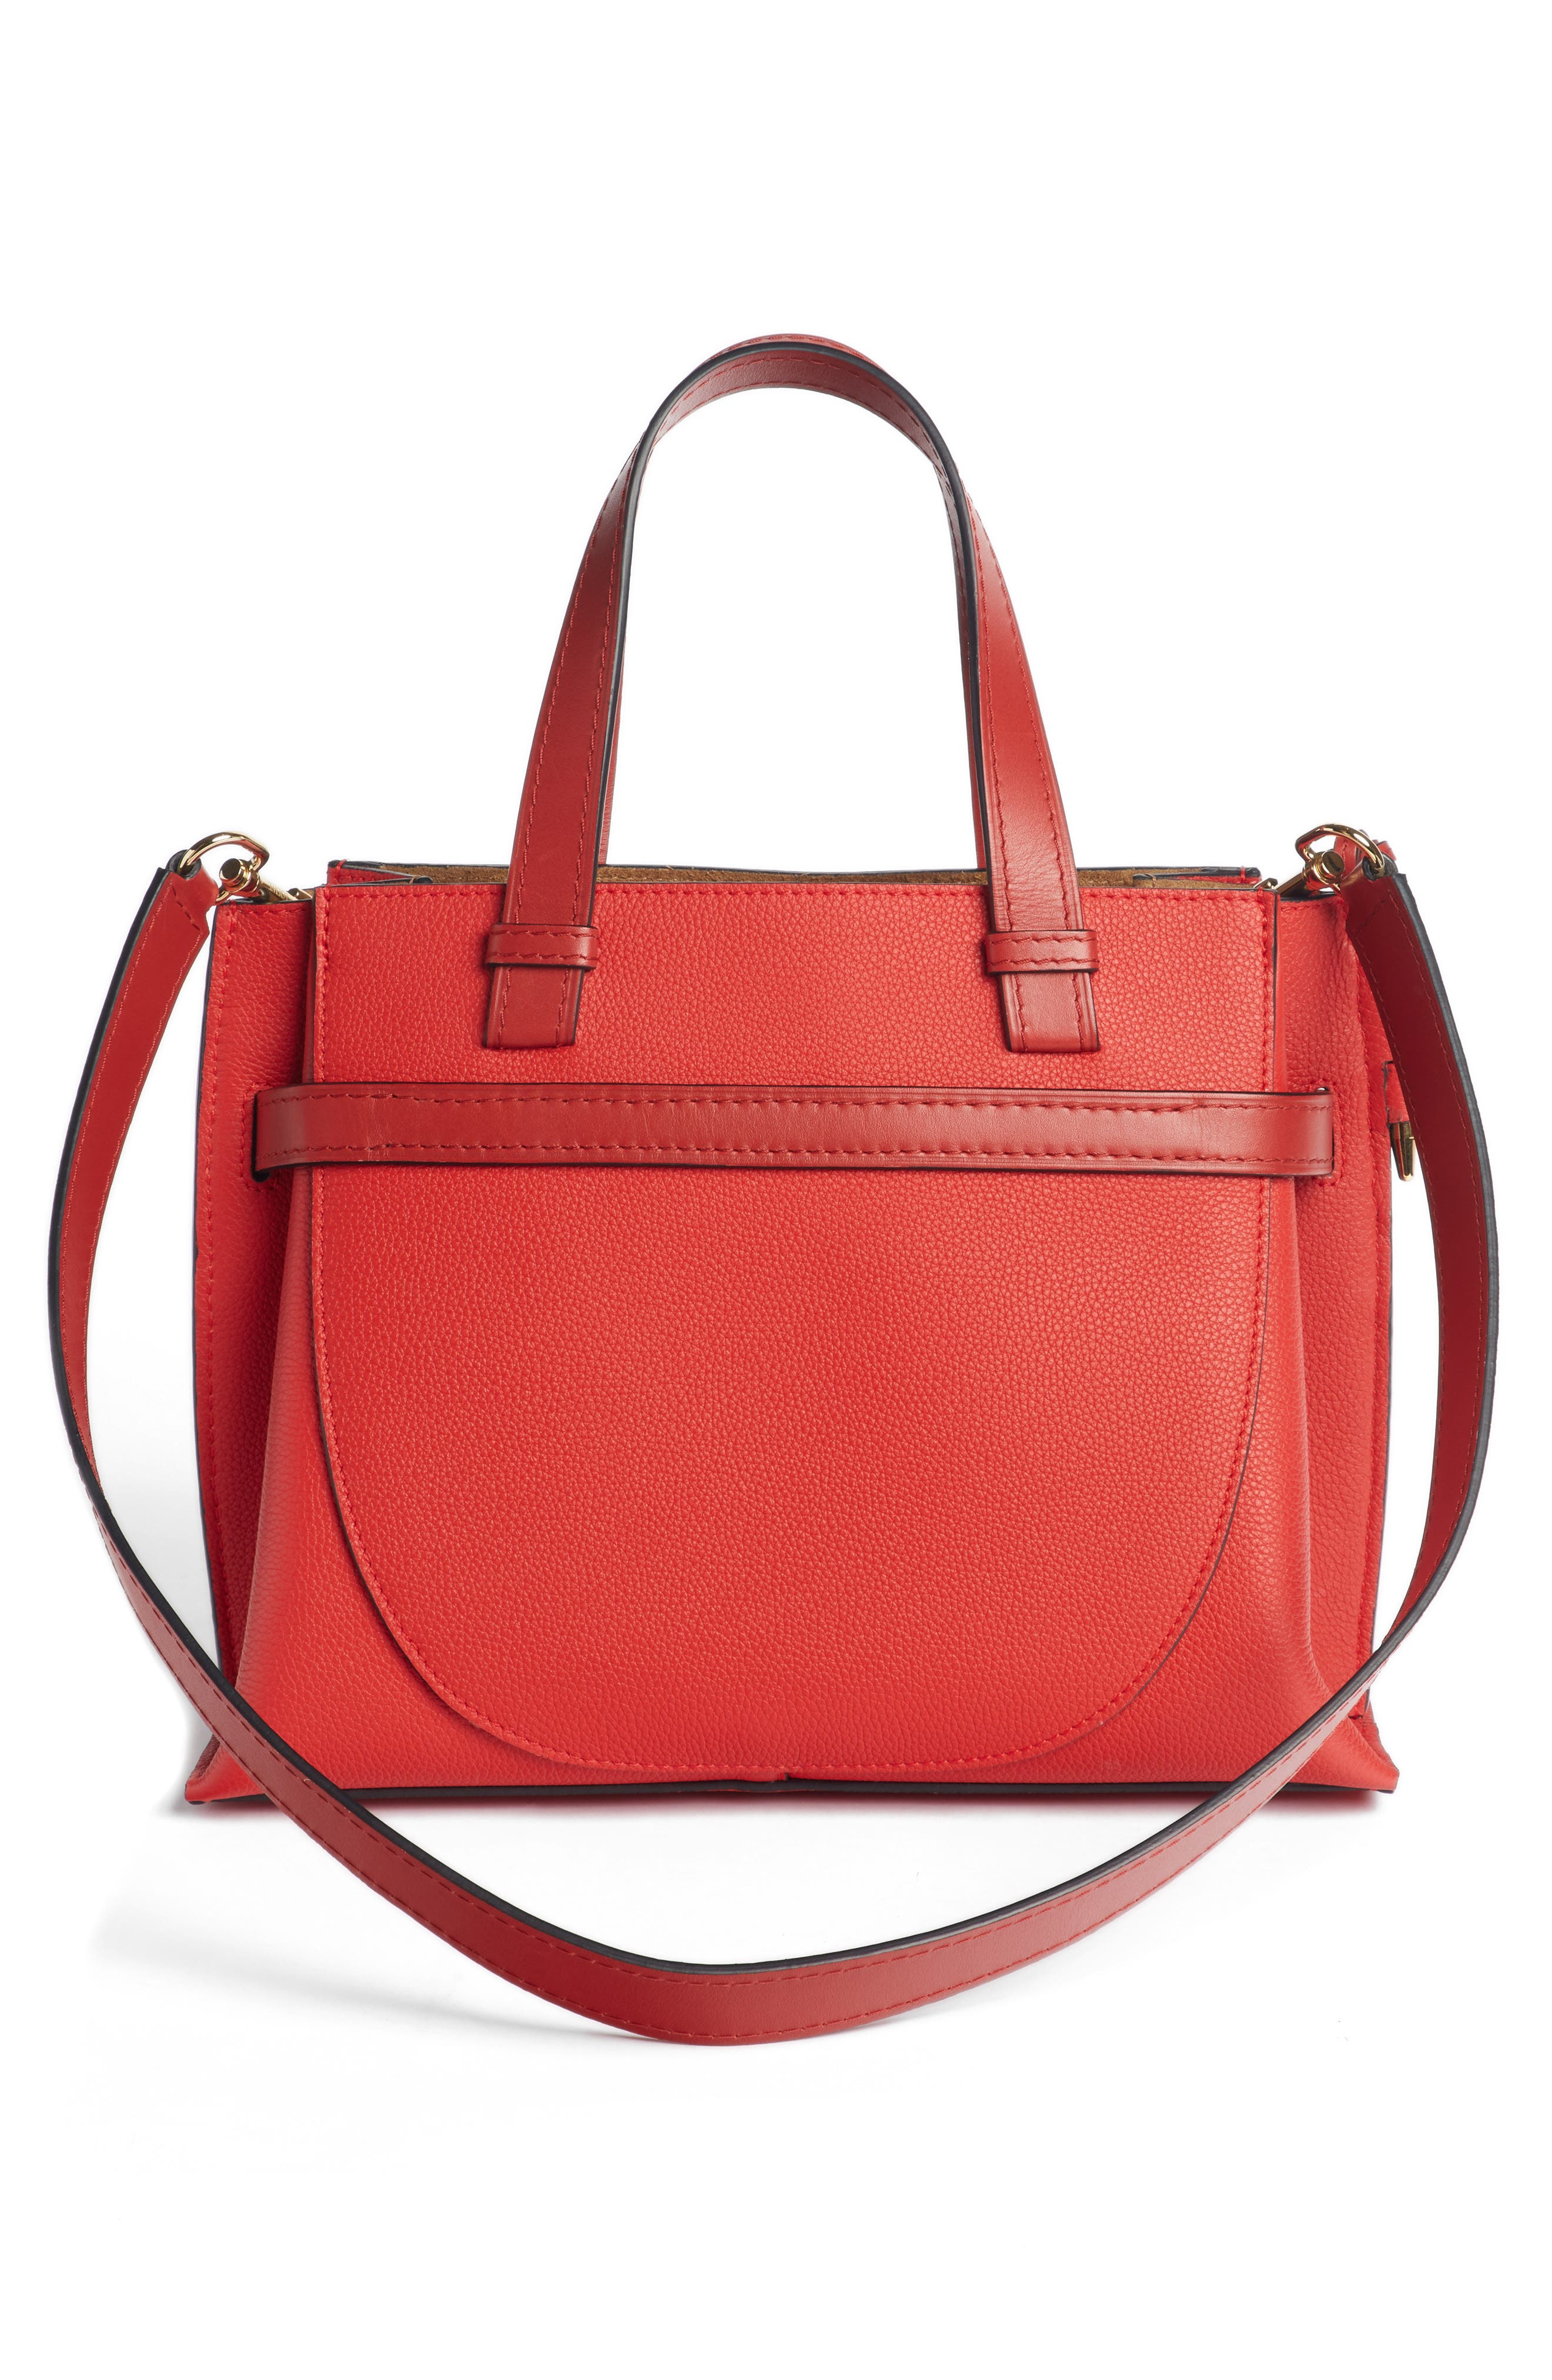 Gate Calfskin Leather Tote,                             Alternate thumbnail 3, color,                             SCARLET RED/ BURNT RED